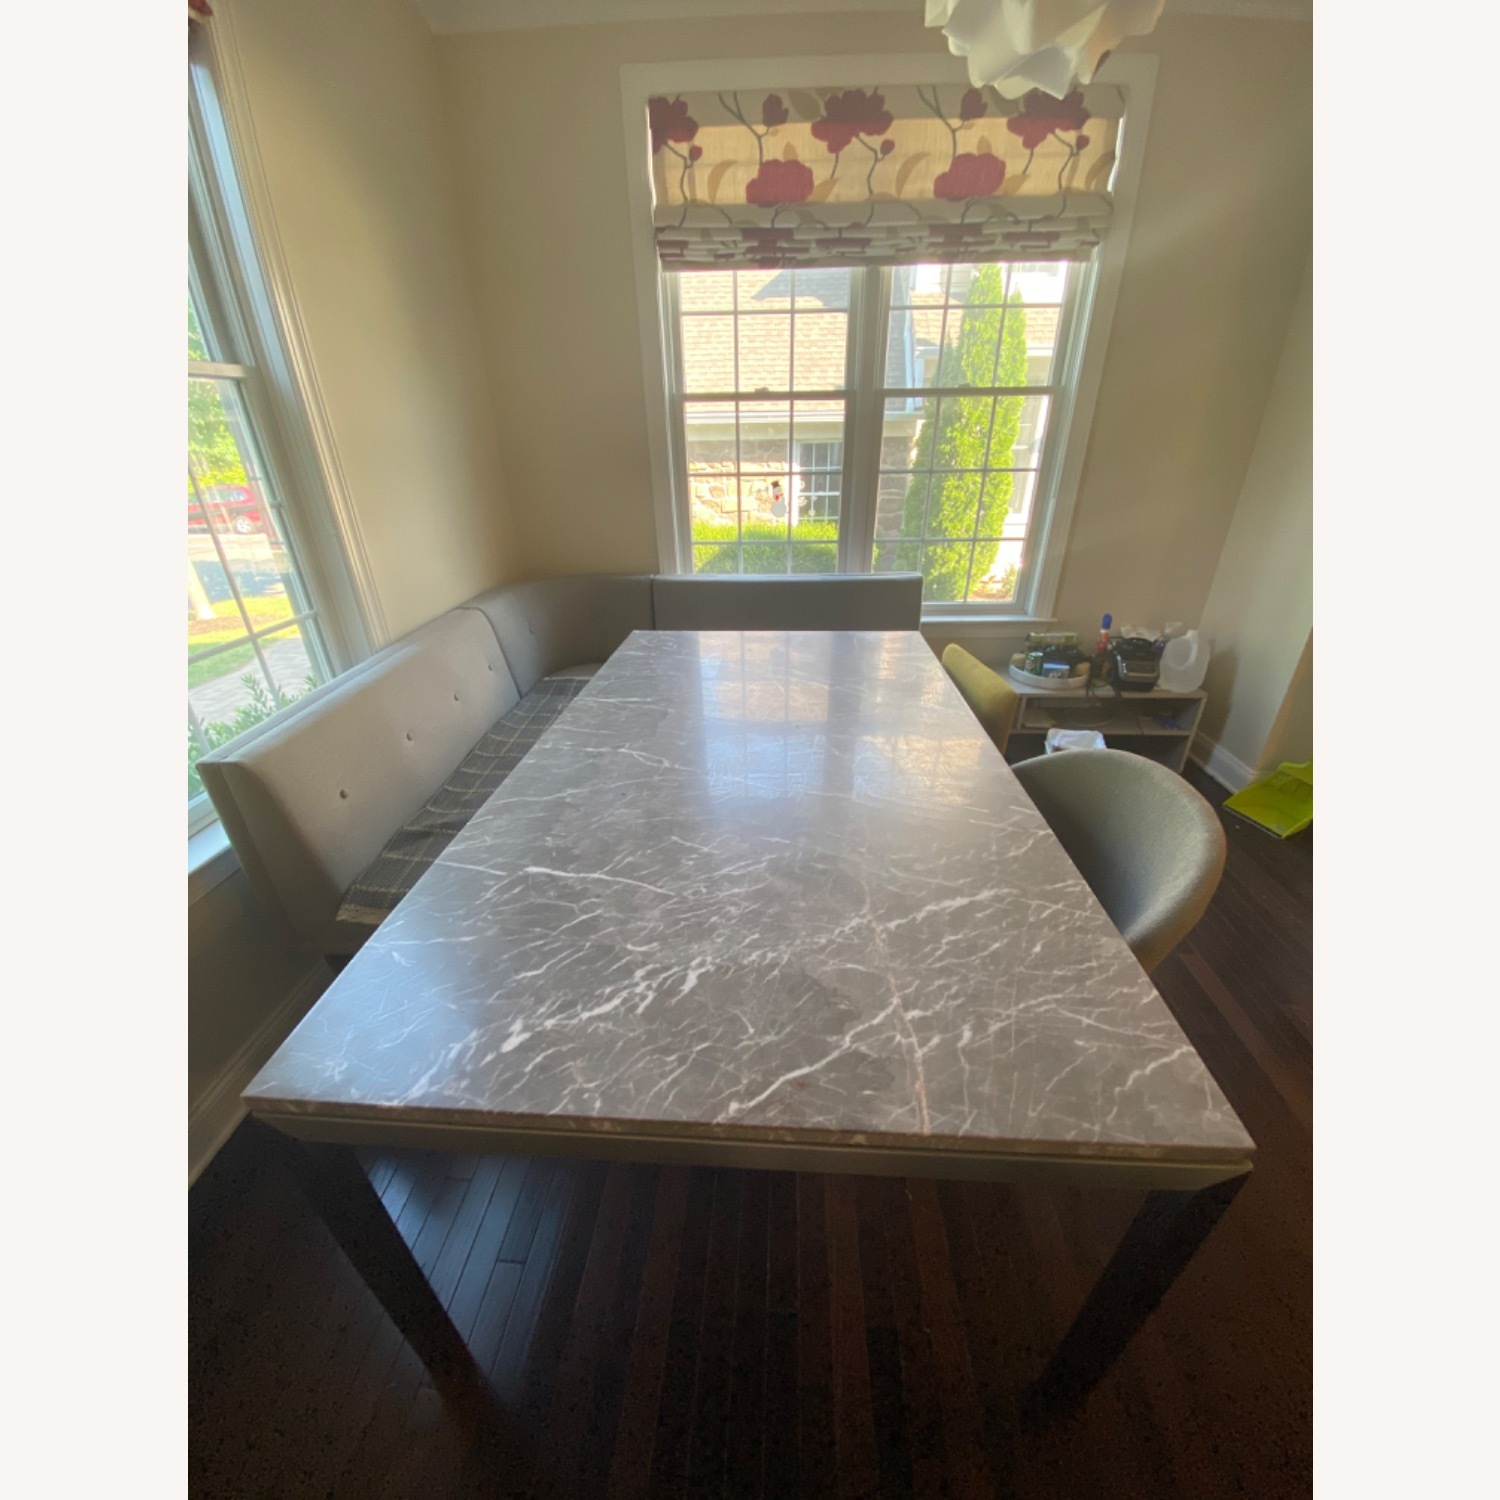 Crate and barrel grey marble dining table - image-5